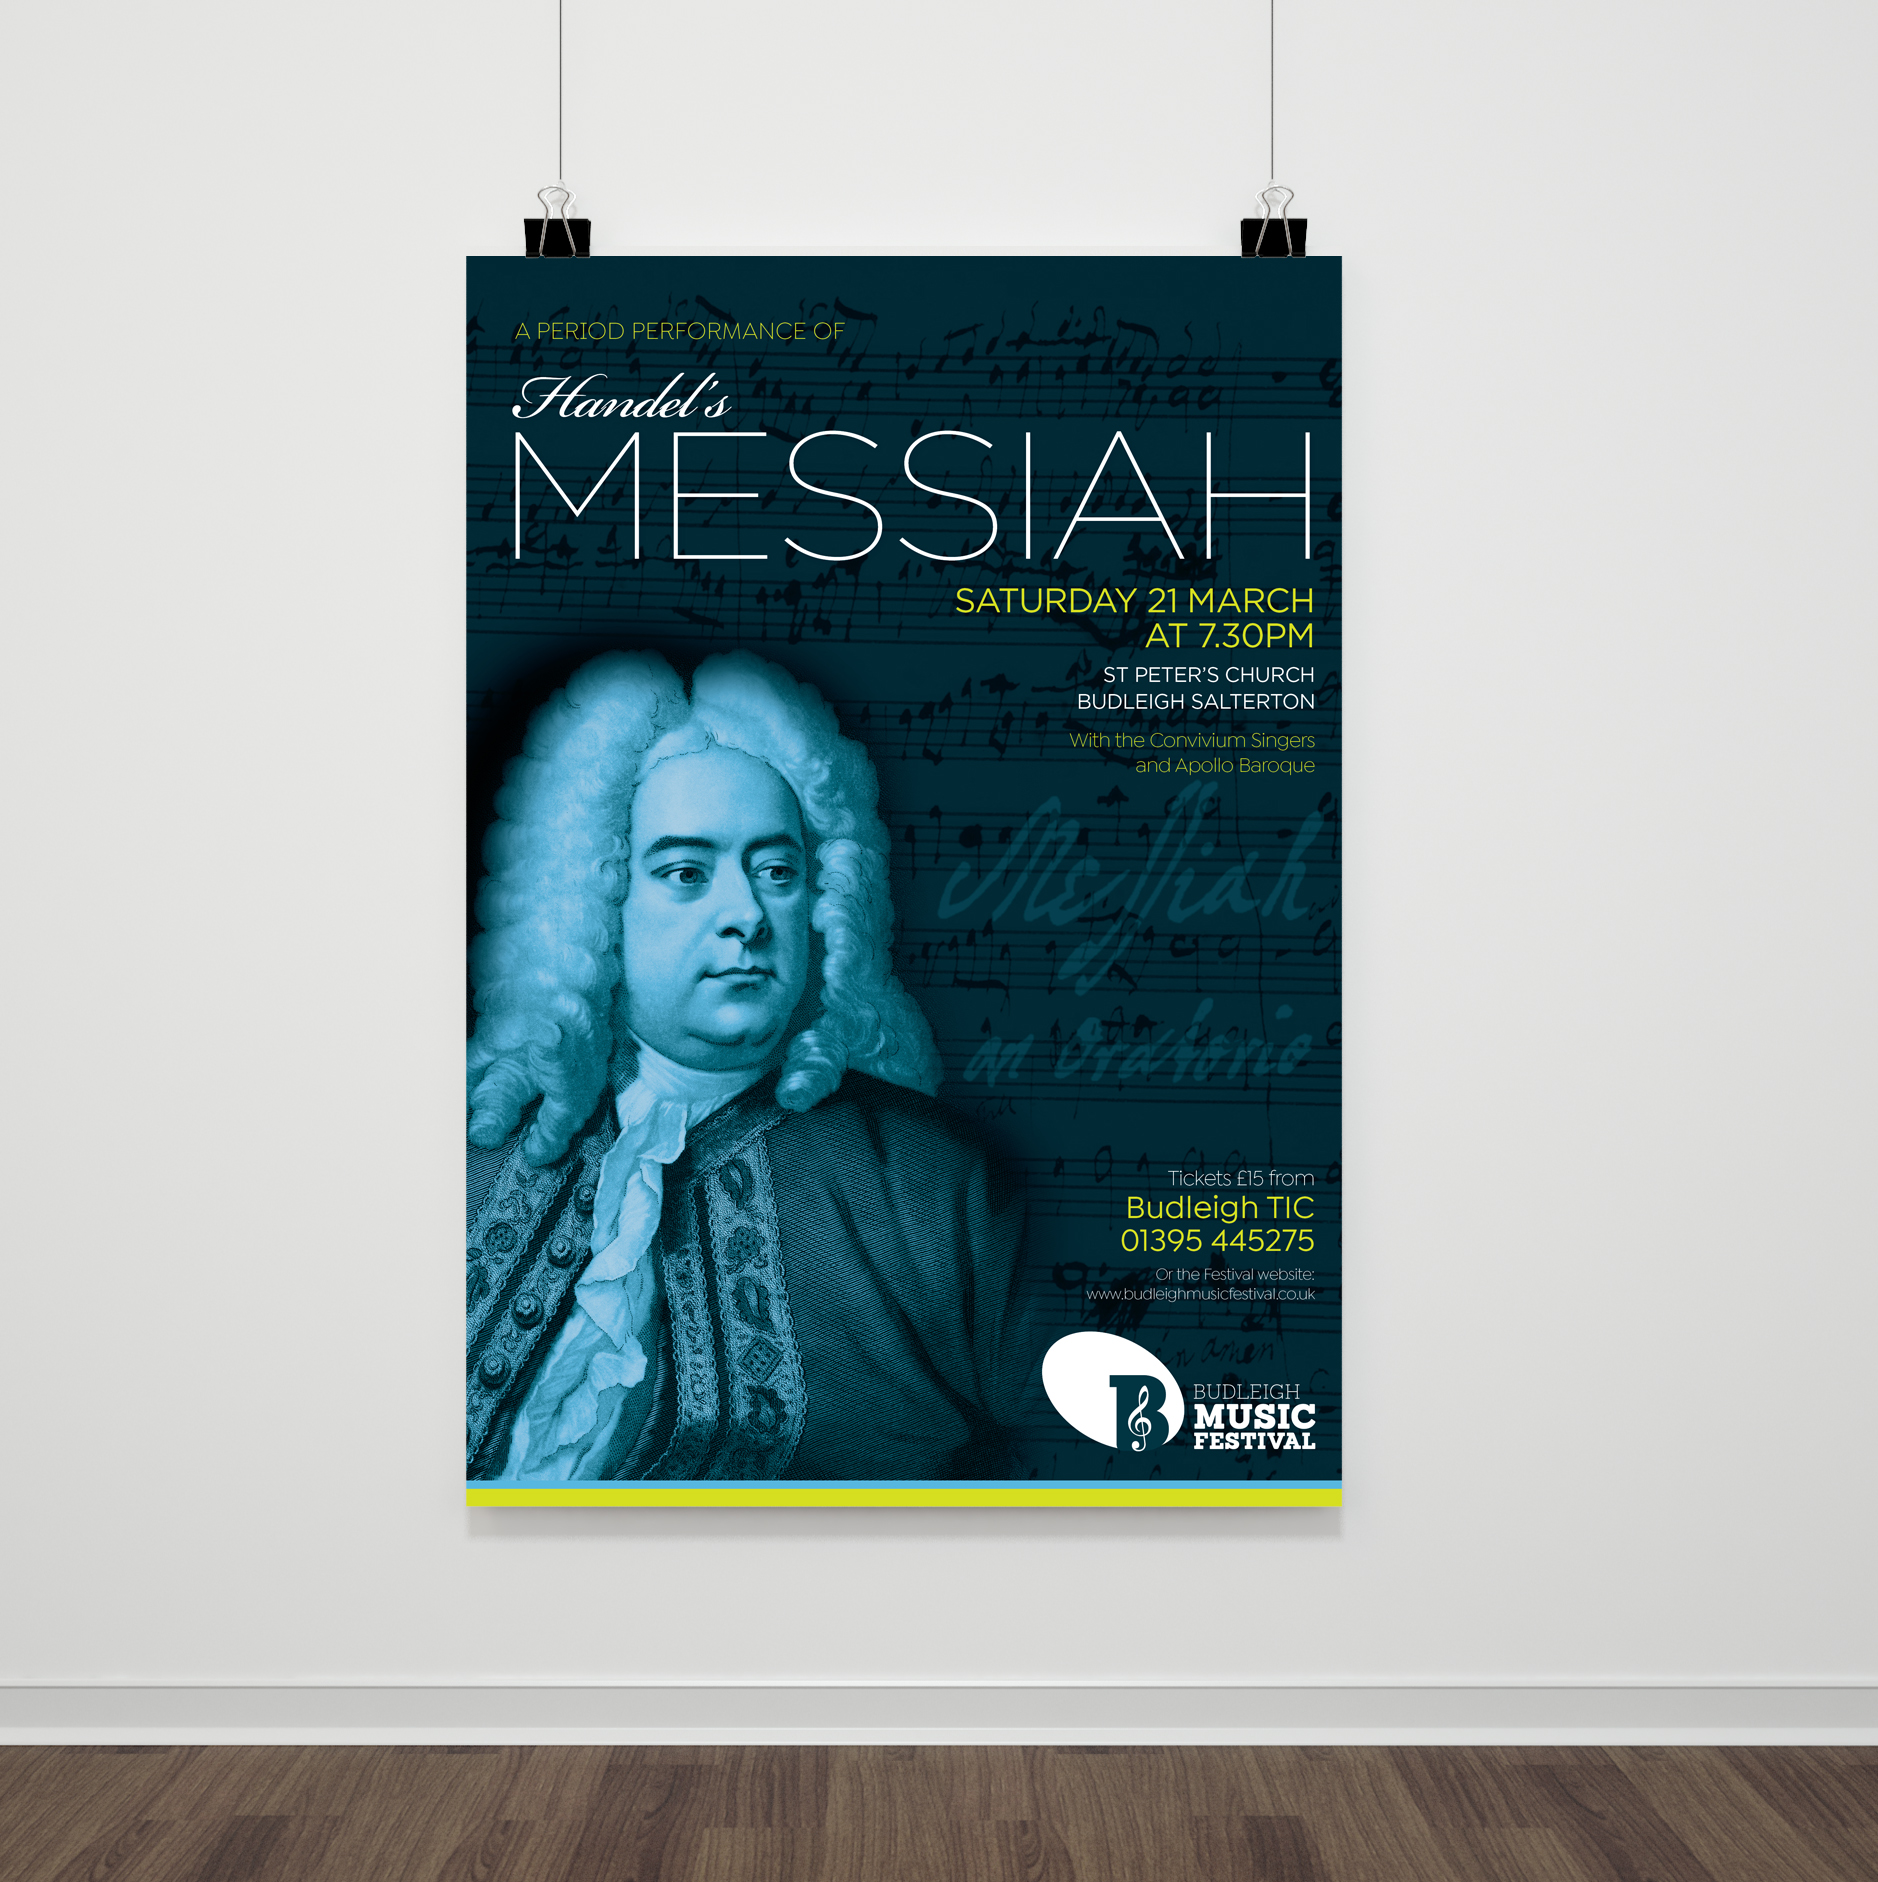 Poster design for a performance of Handel's Messiah